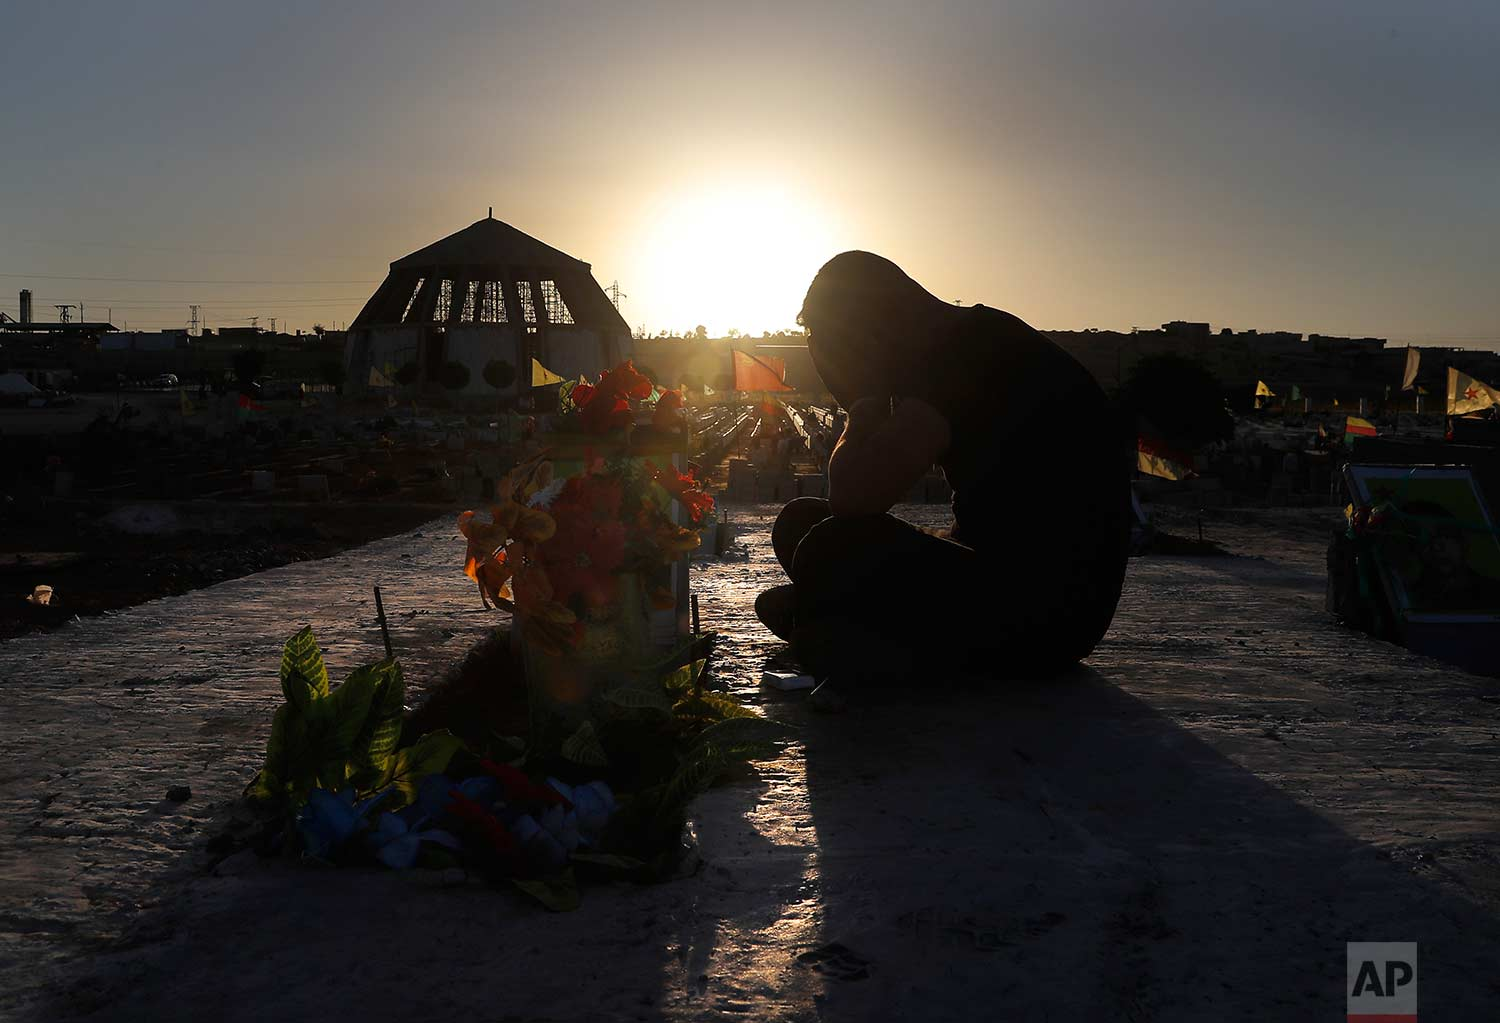 A Kurdish man mourns as he sits next to the grave of his friend who was killed while fighting against Islamic State militants in Raqqa, at a cemetery in Kobani, Syria, Friday, July 28, 2017. (AP Photo/Hussein Malla)